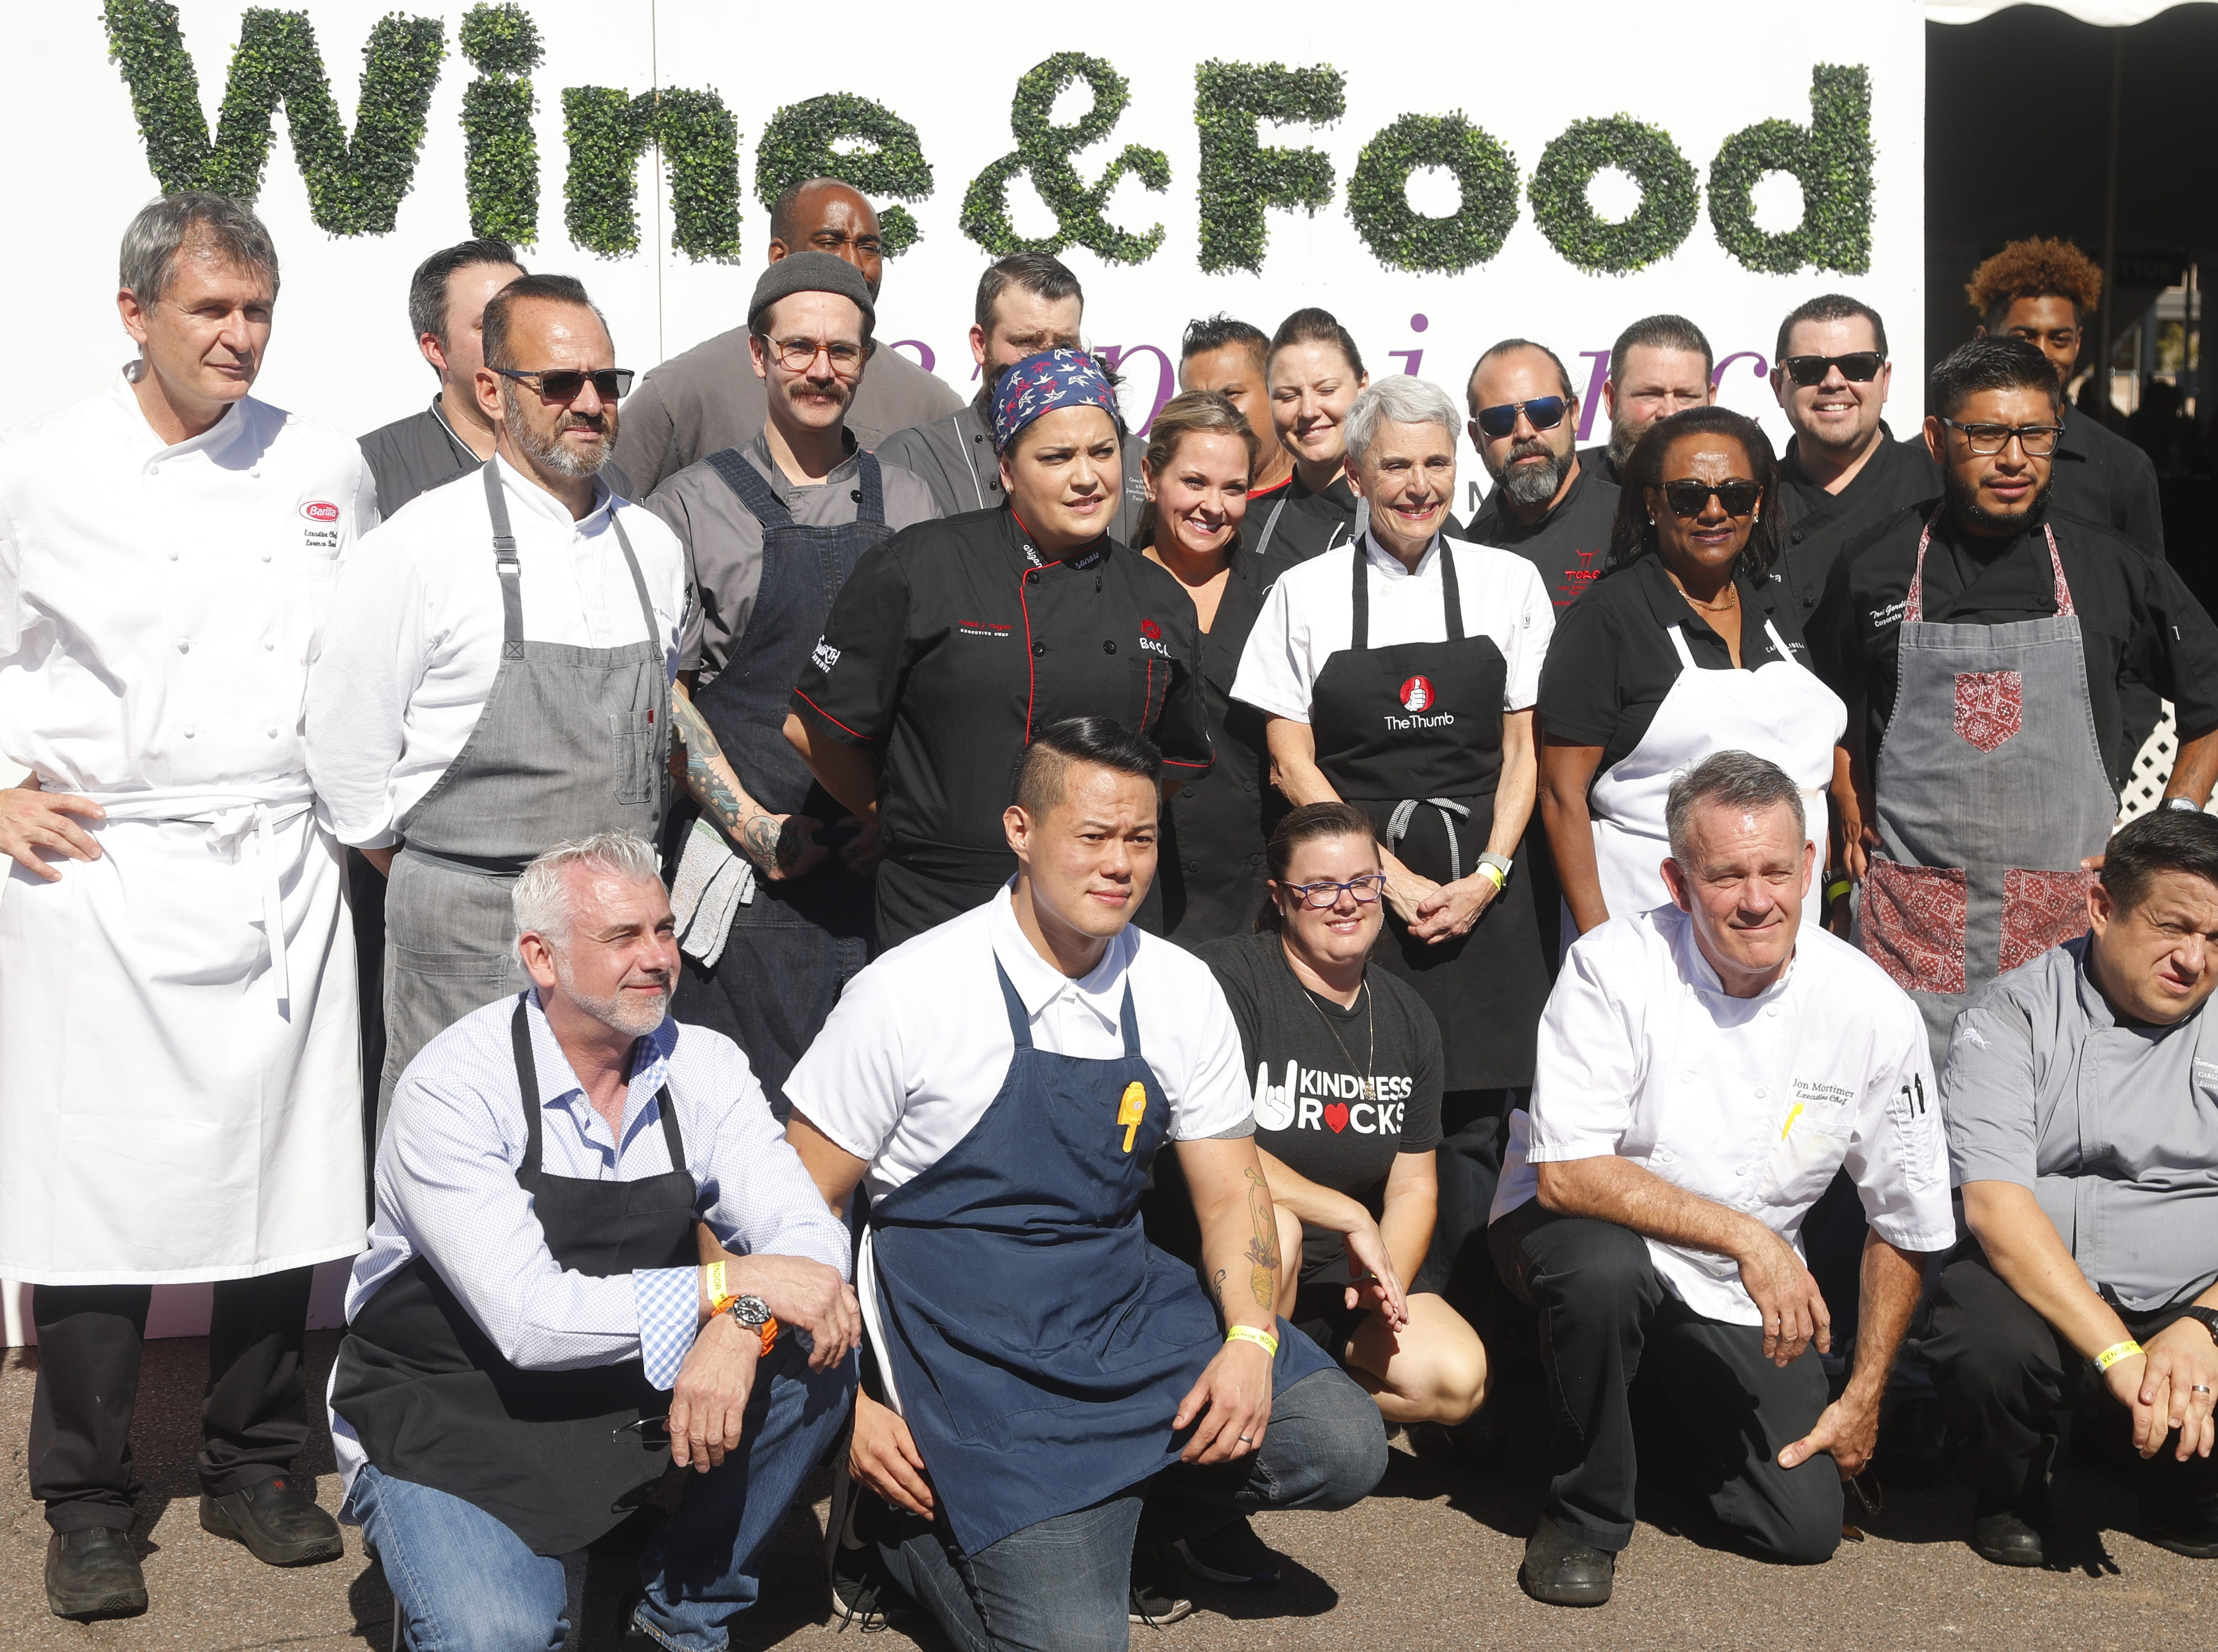 Chefs line up for a group photograph during the azcentral Wine & Food Experience at WestWorld of Scottsdale, Ariz. on Saturday, Nov. 3, 2018.